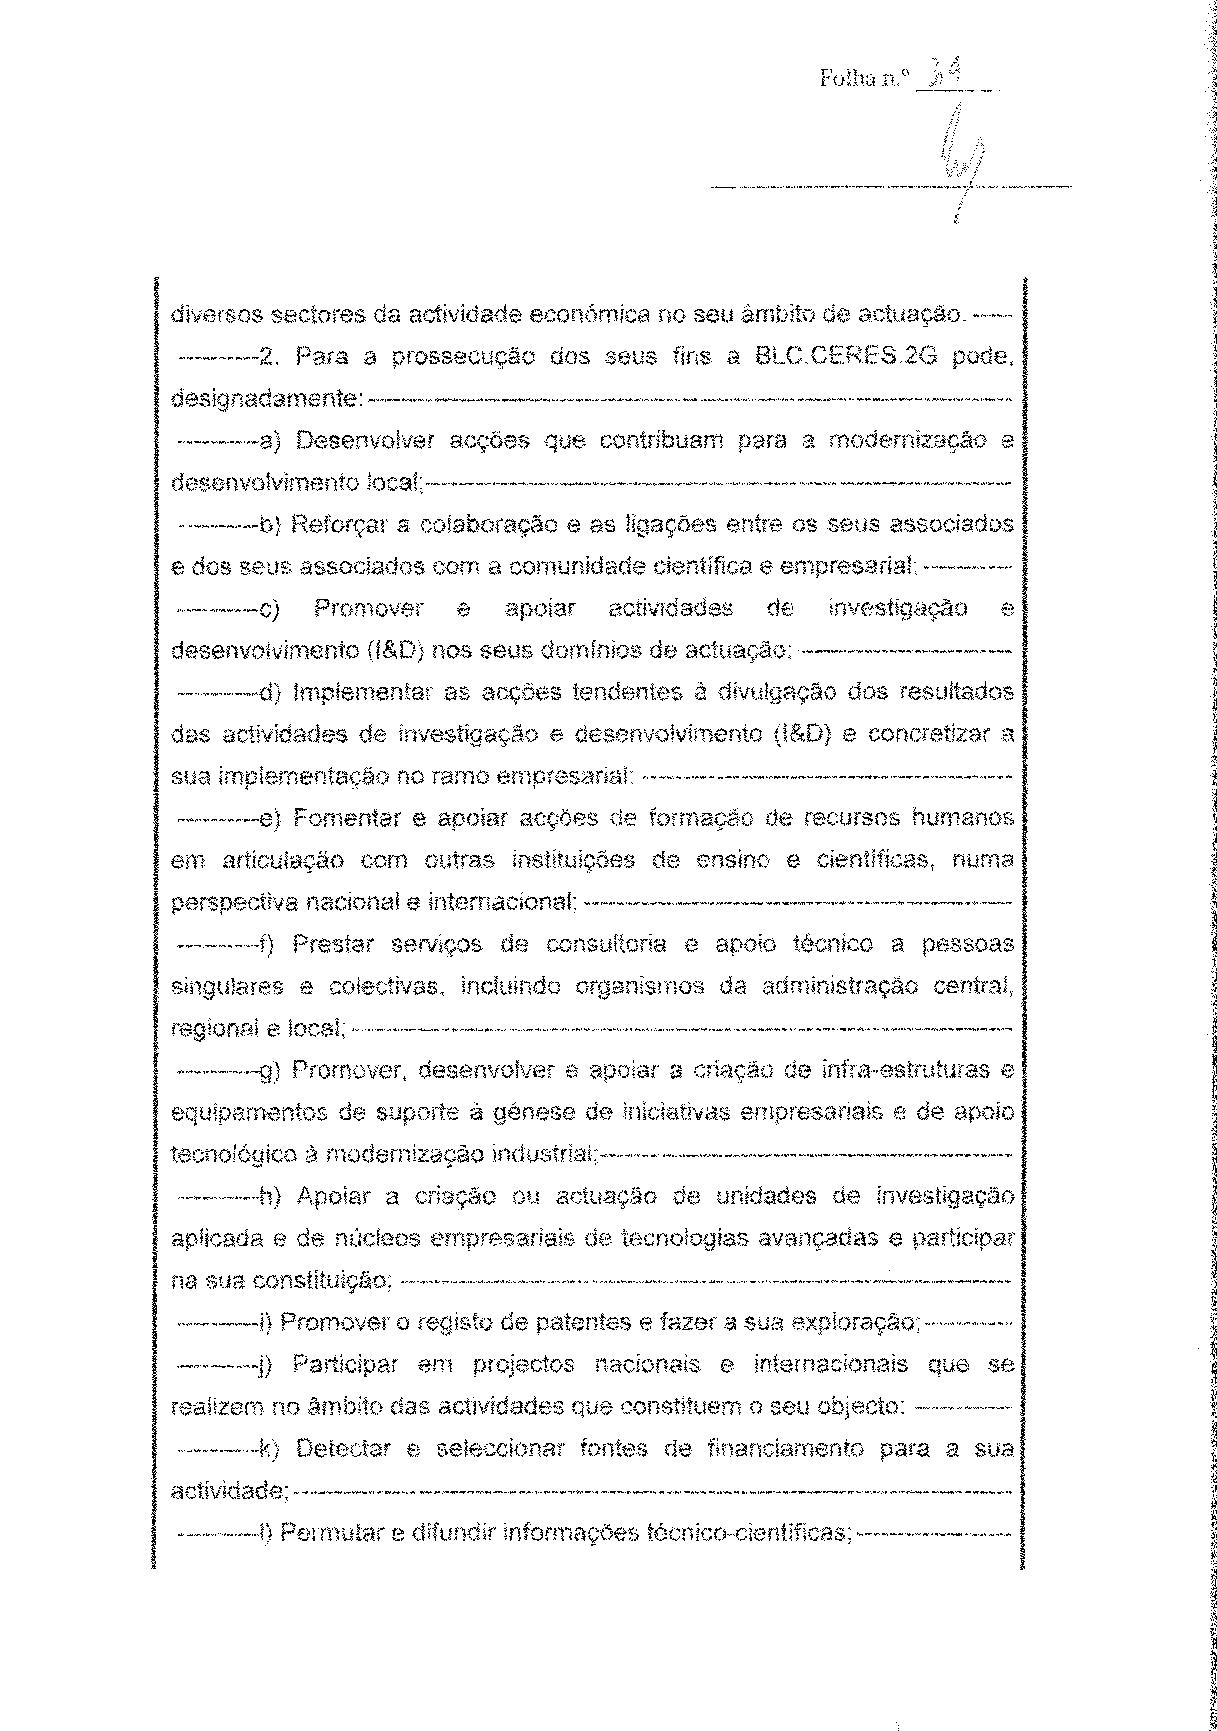 509402267_Associacao_BLC_rectificacao (5)-page-003